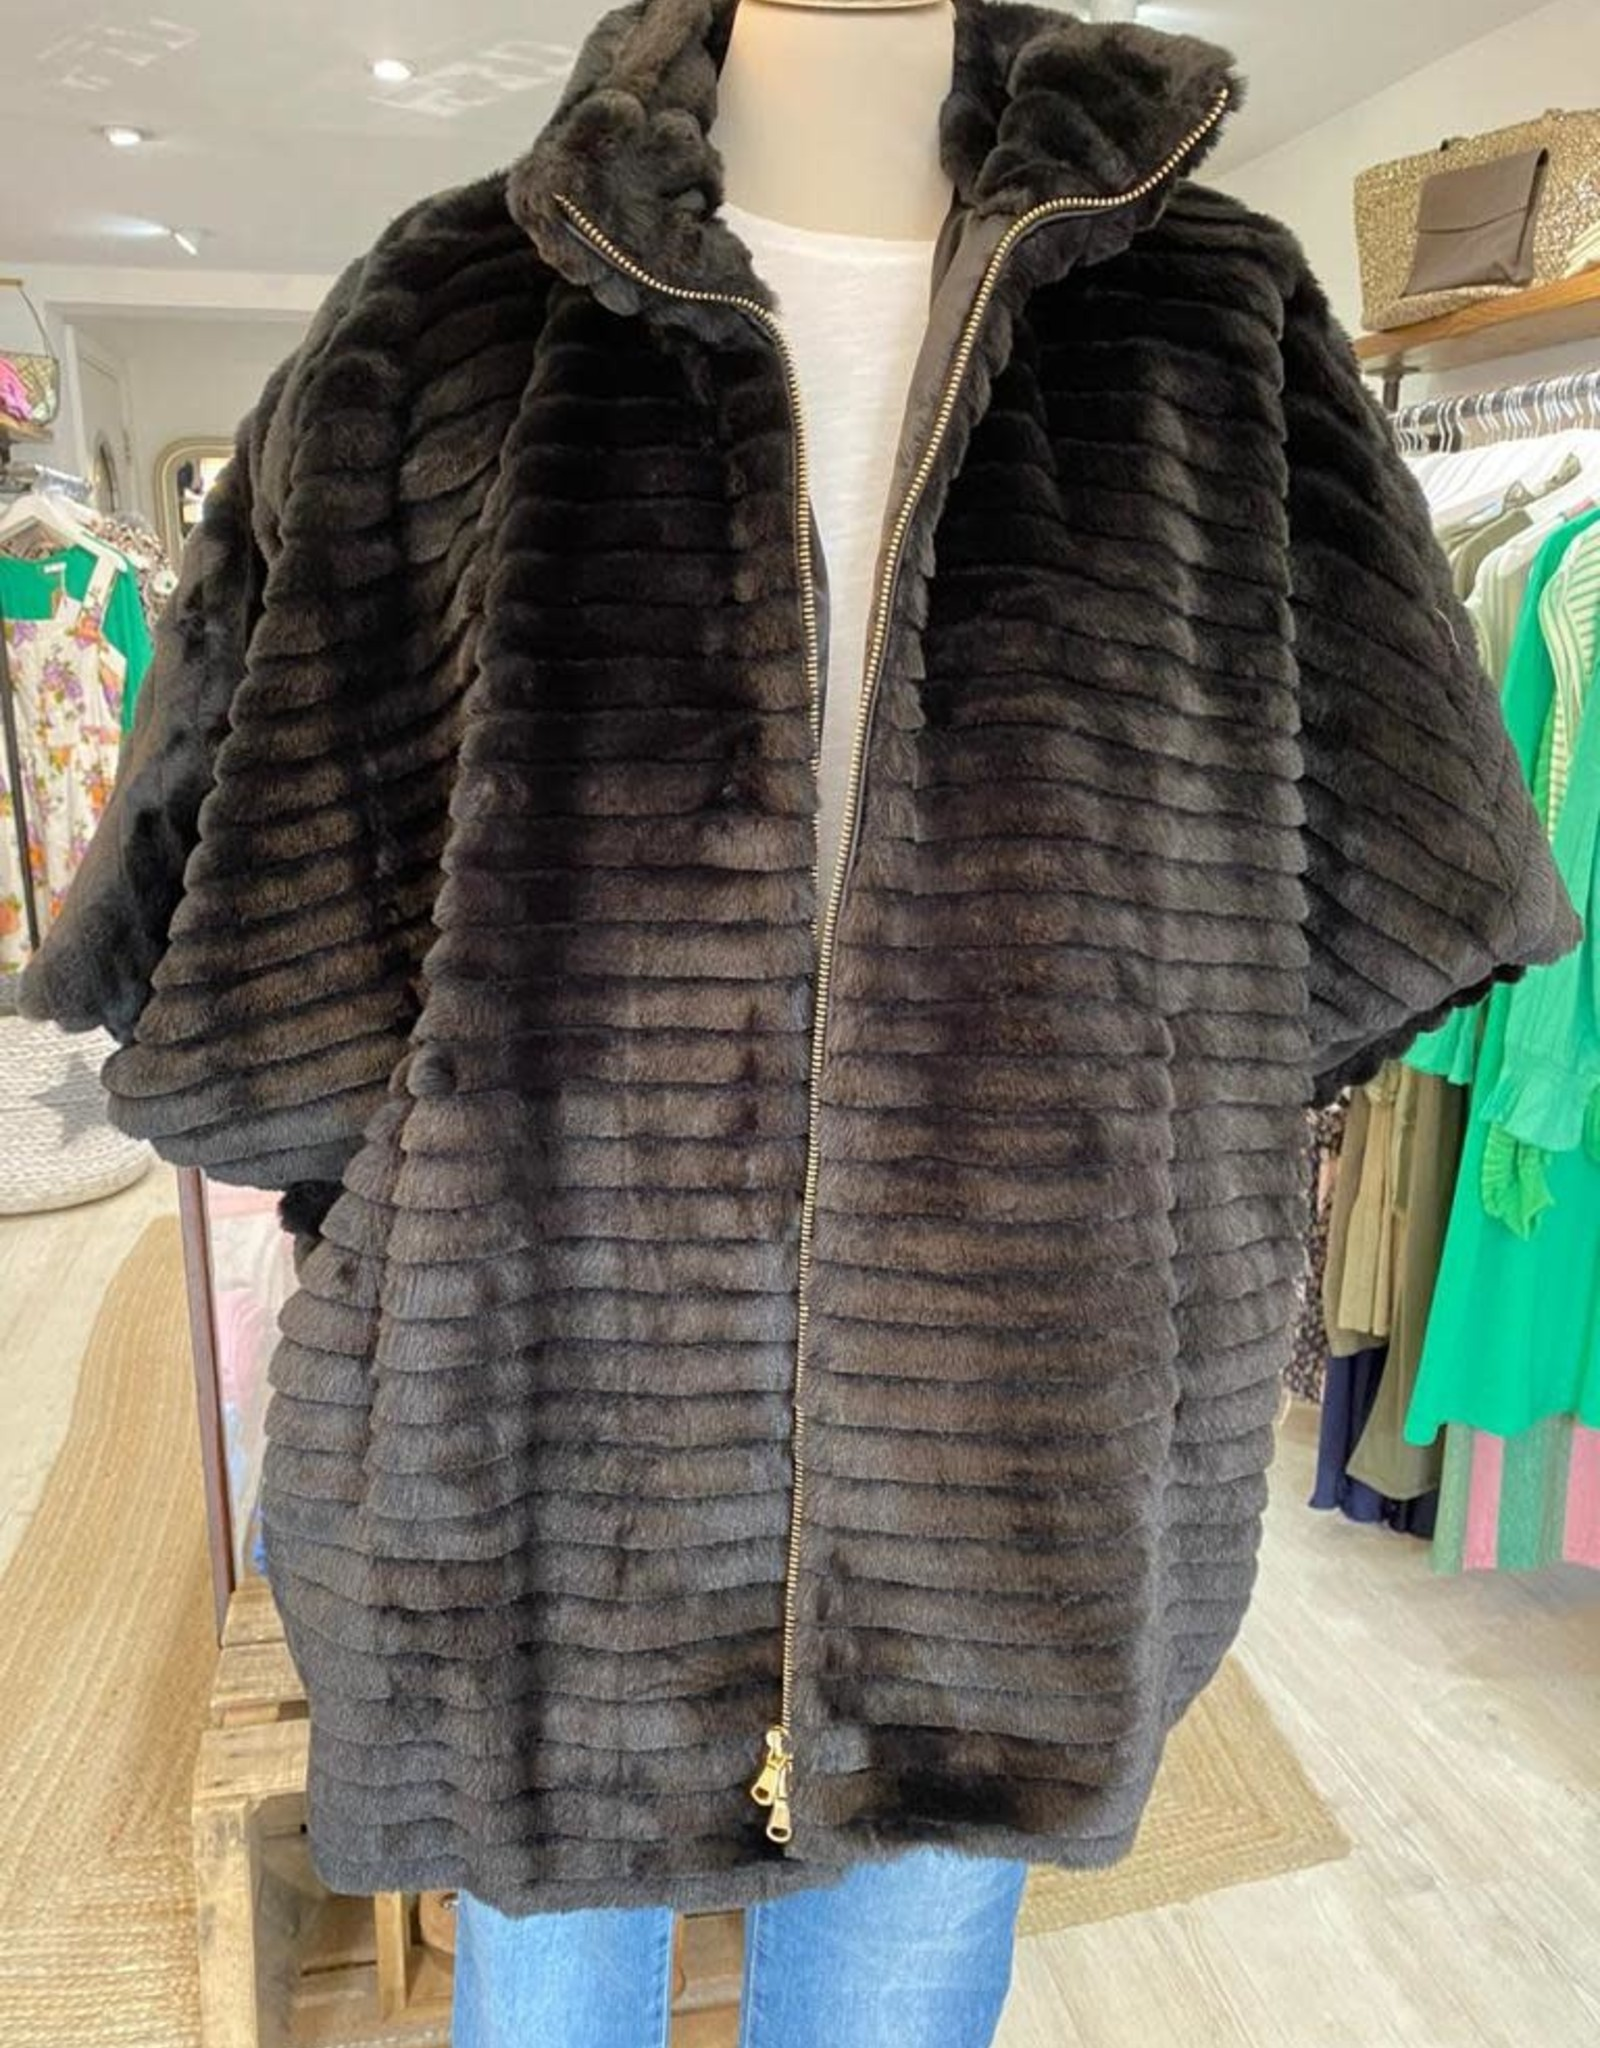 EMME MARELLA IDILLIO FAUX FUR OVER-SIZED COAT W 3/4 SLEEVE BY EMME